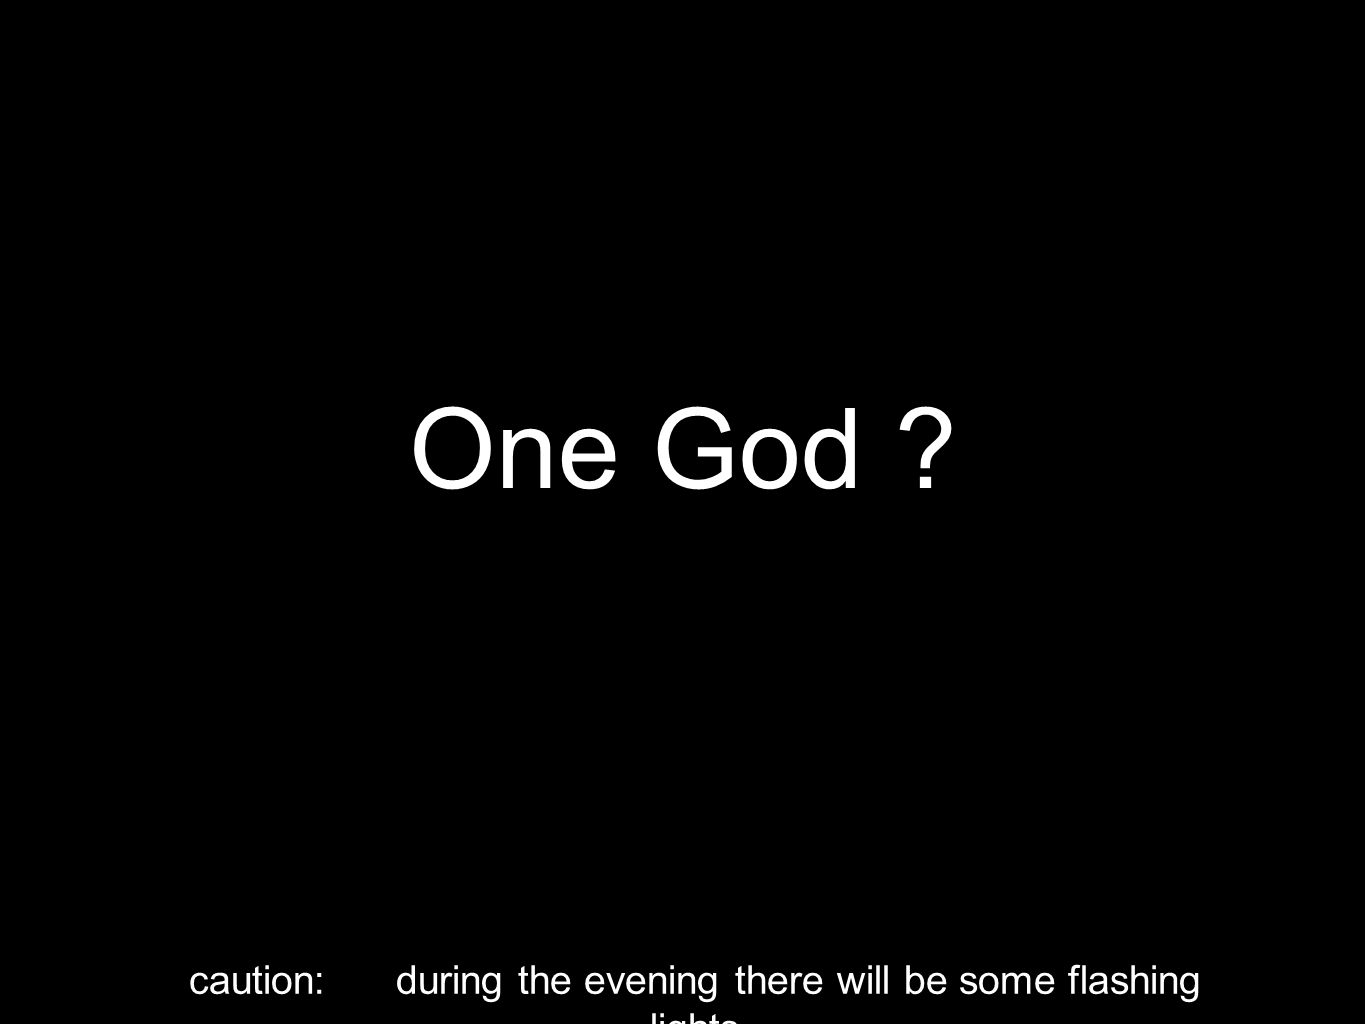 One God caution: during the evening there will be some flashing lights